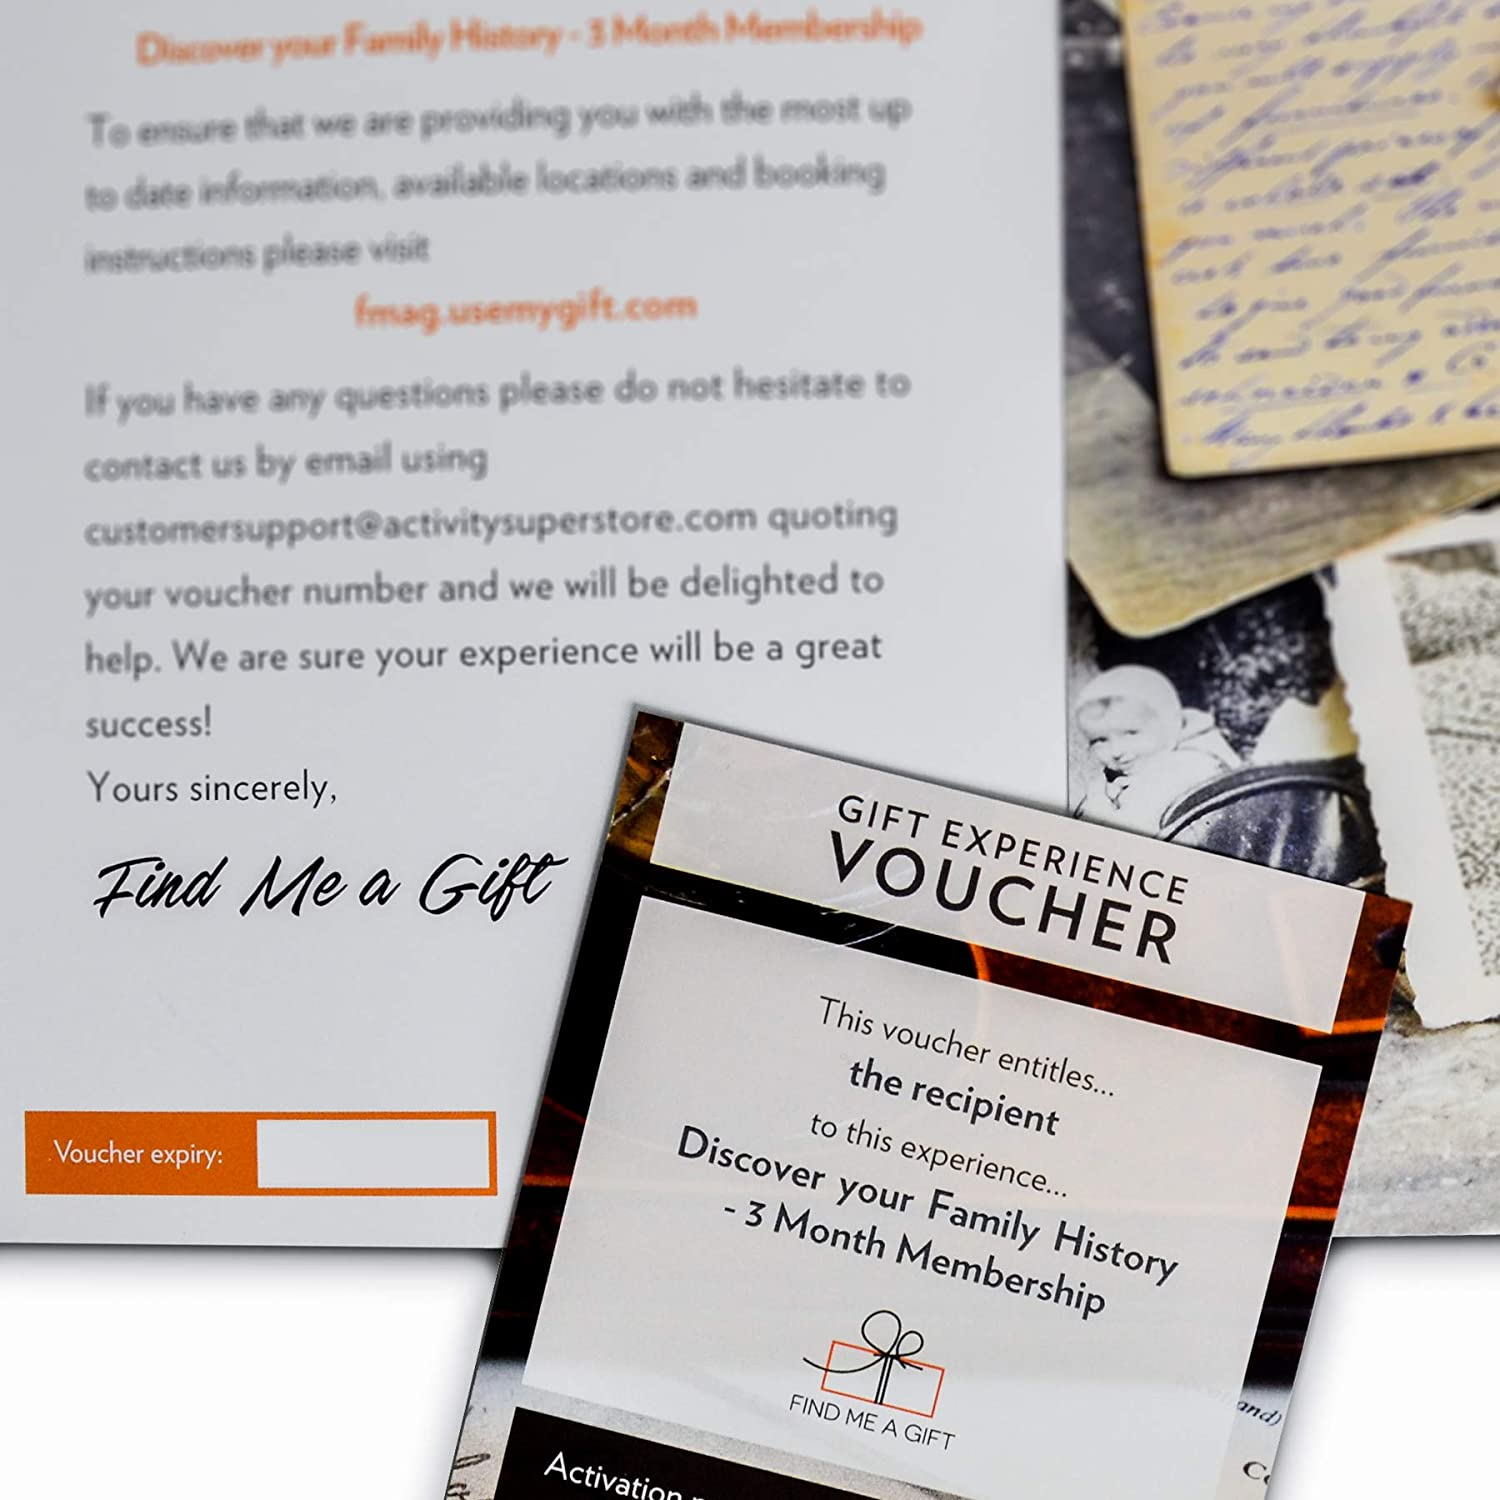 Activity Superstore Discover your Family History 3 Month Membership Gift